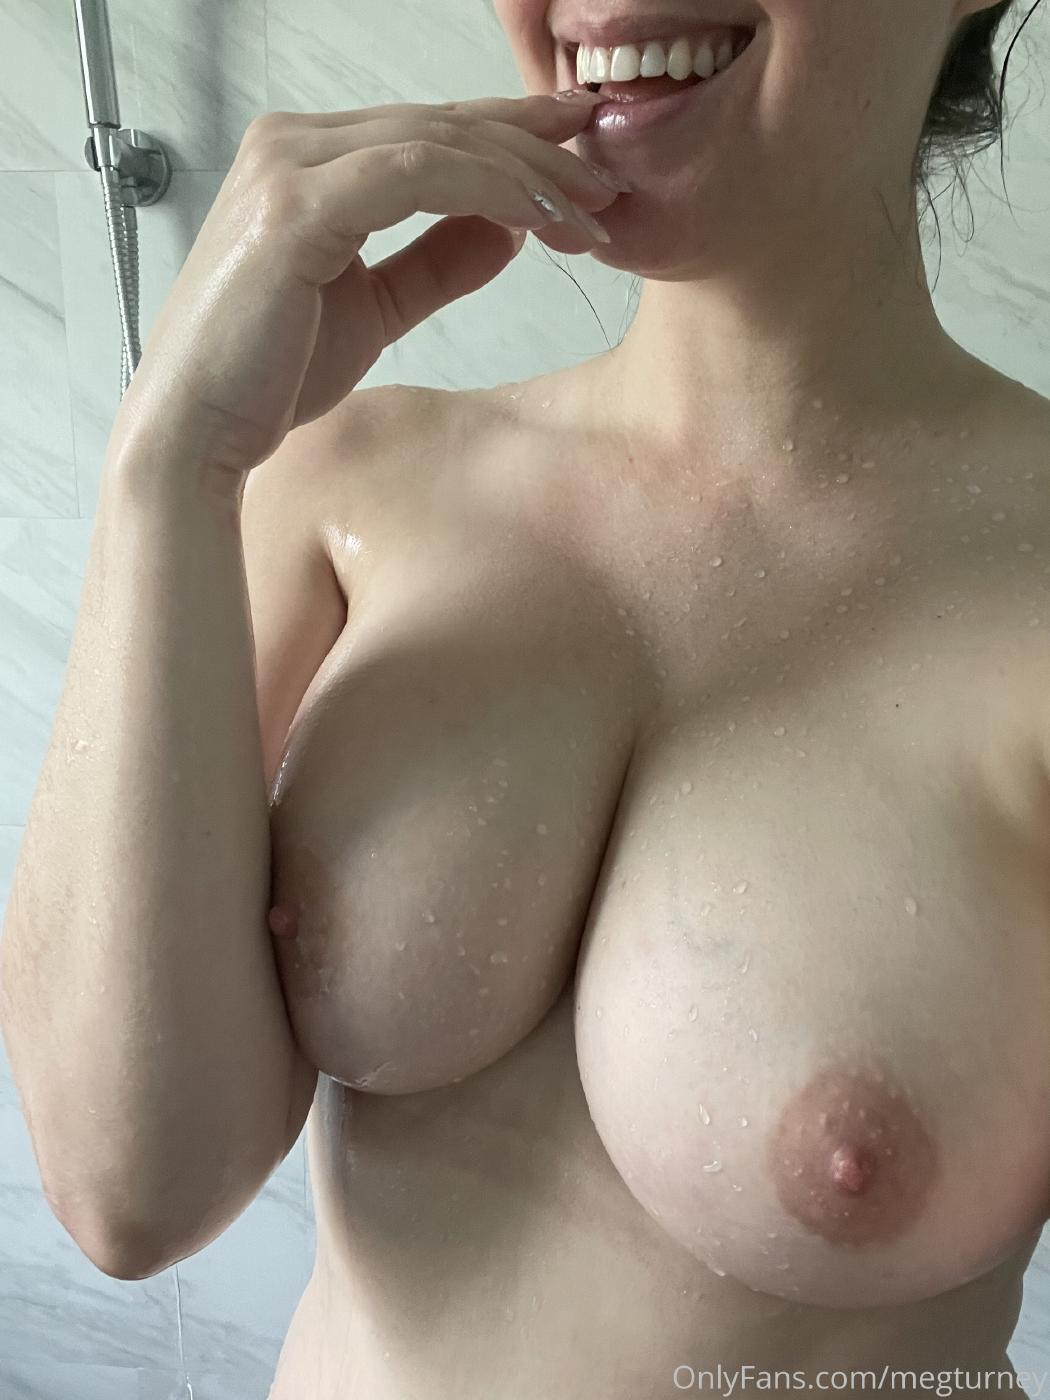 Meg Turney Extra Spicy Shower Candid Onlyfans Set Leaked 0002